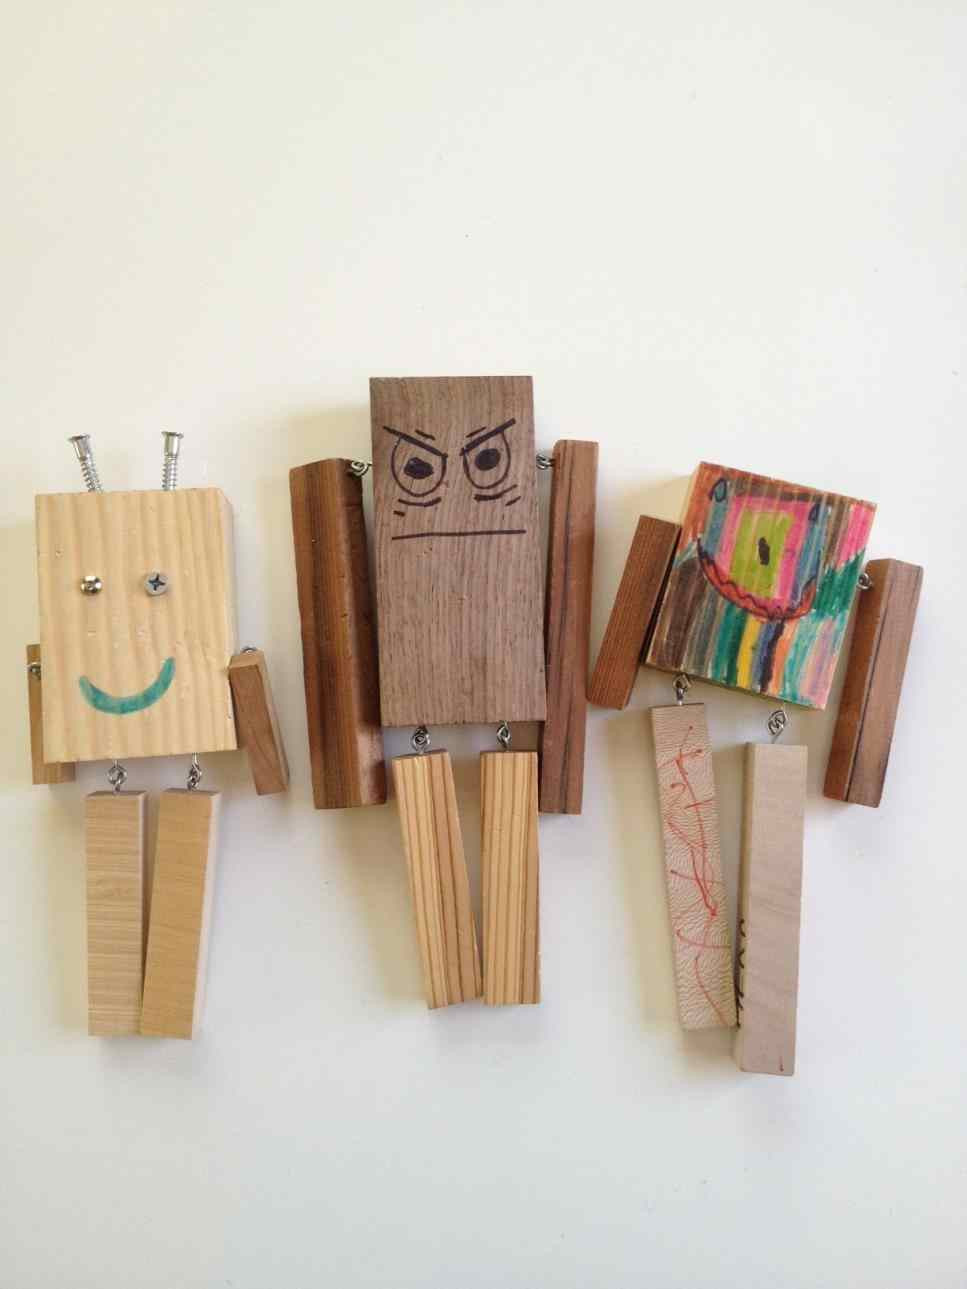 Best ideas about Wooden Craft Ideas For Kids . Save or Pin Diy Wood Crafts Diy Wood Crafts Now.